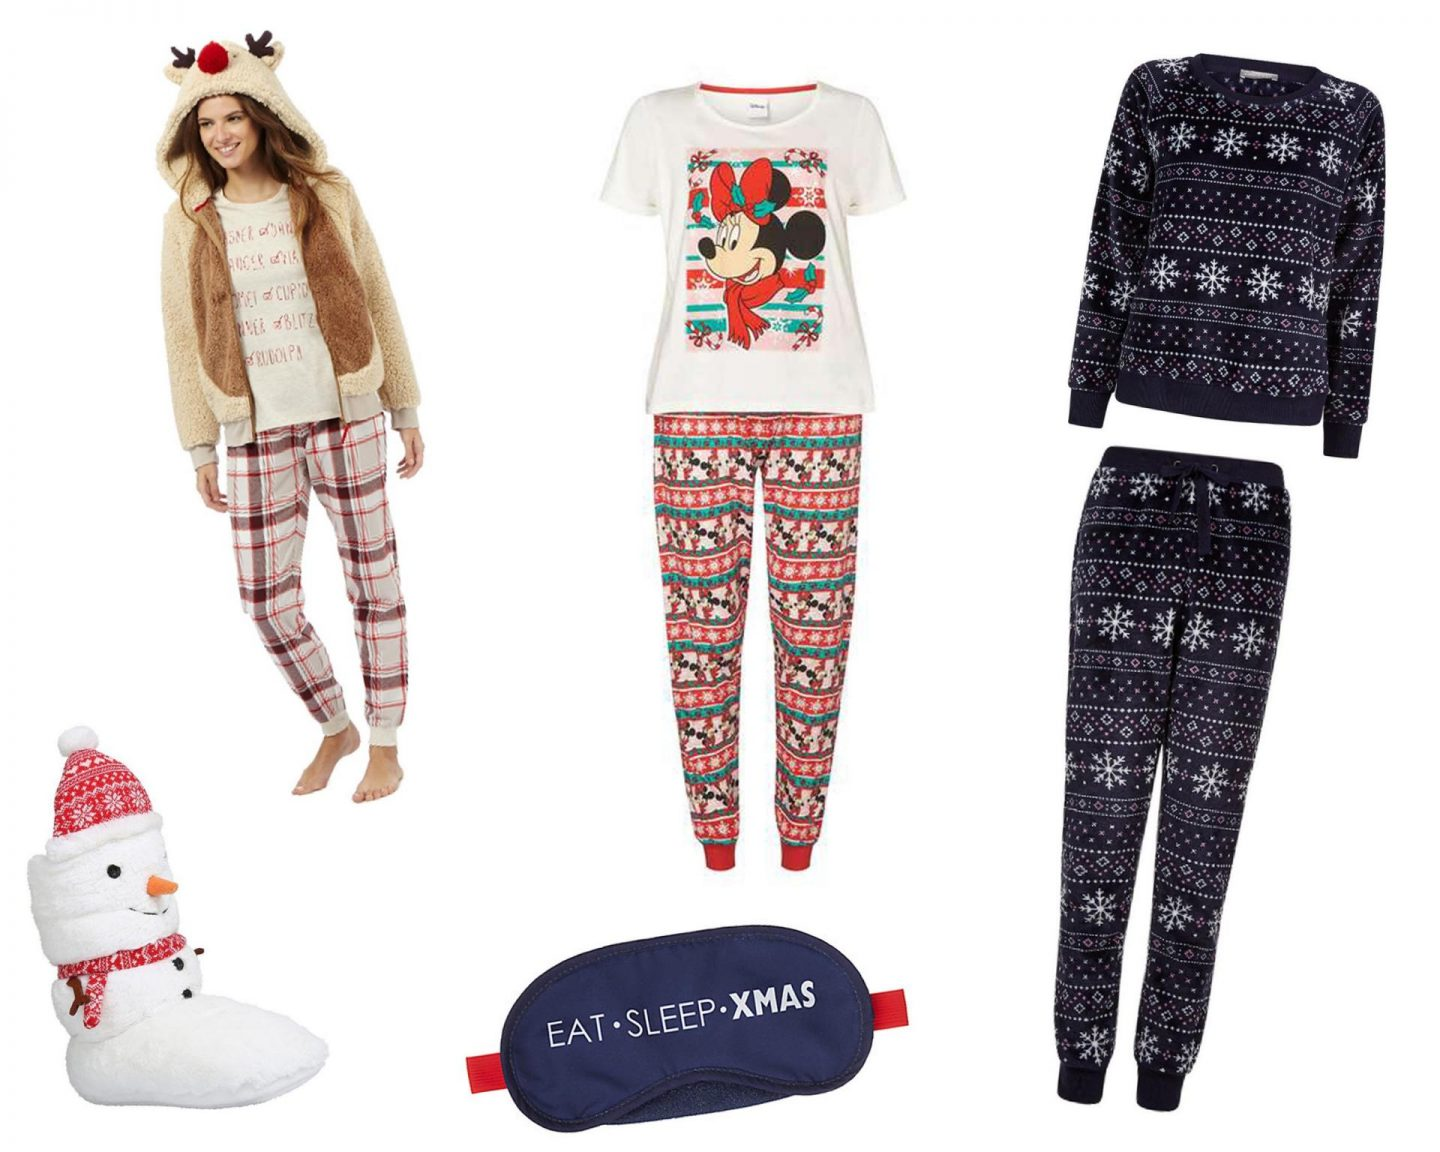 The Best Christmas PJs